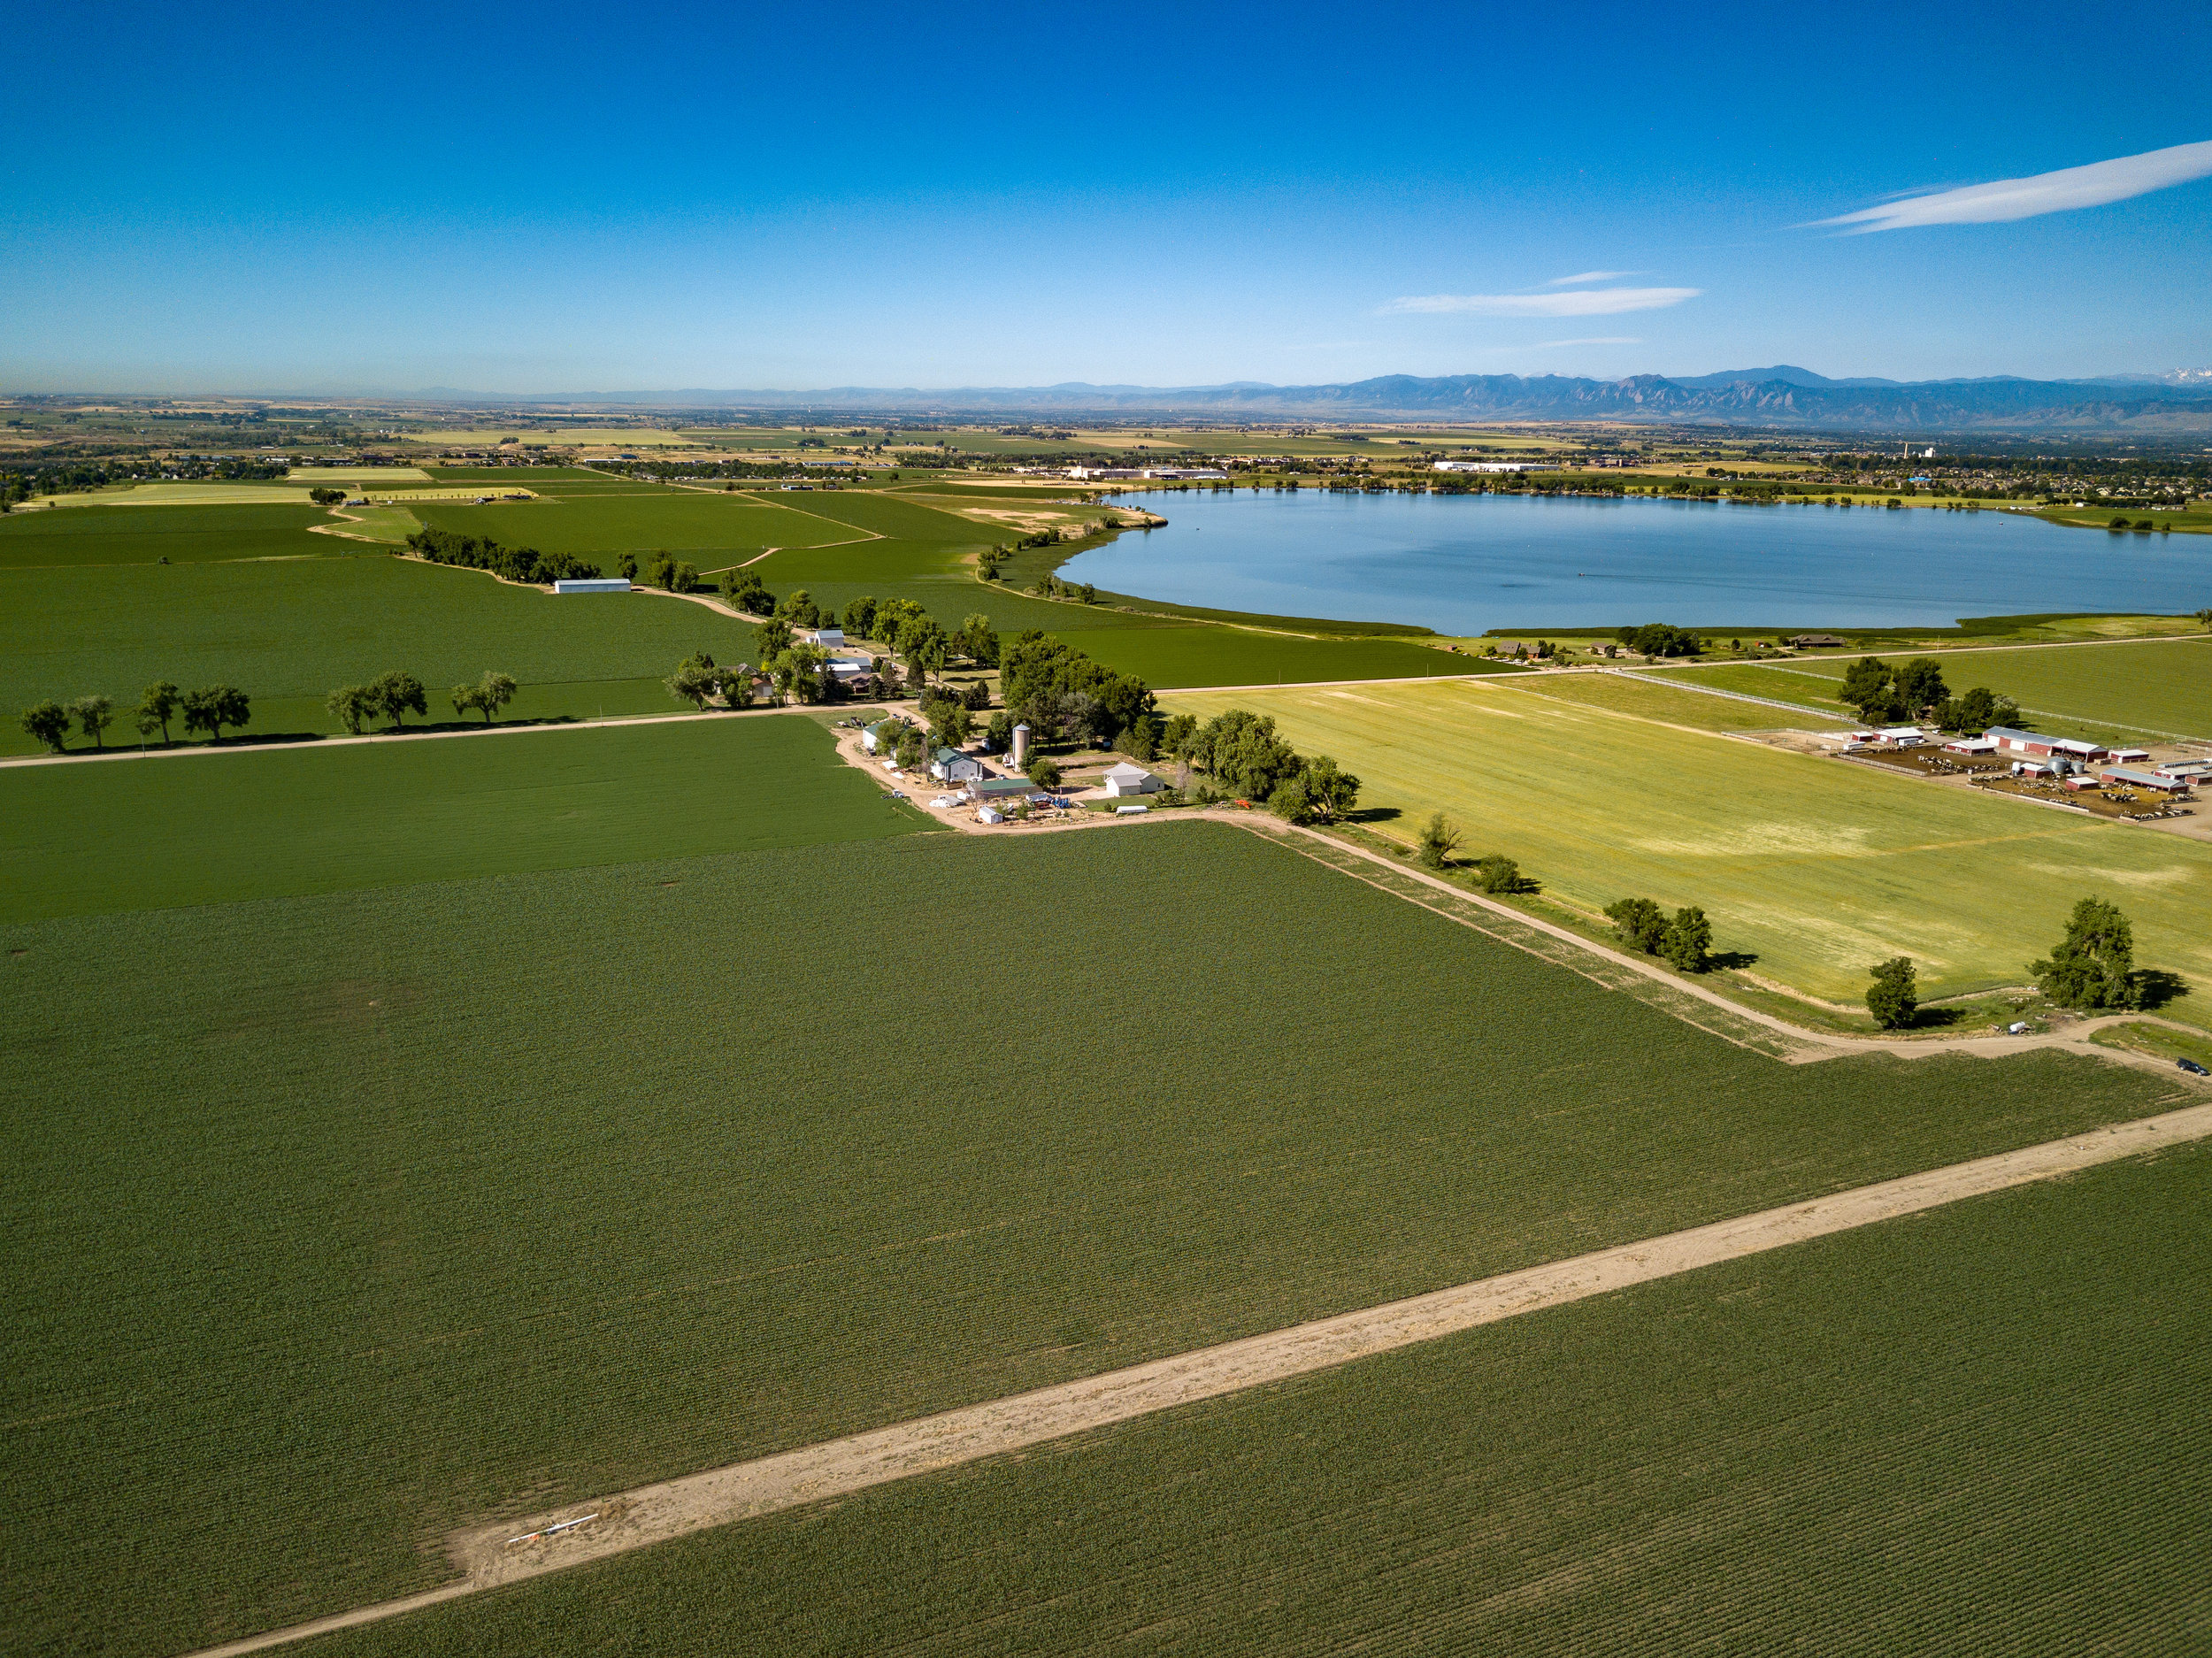 Western Weld County Conservation Easement photo 2.jpg